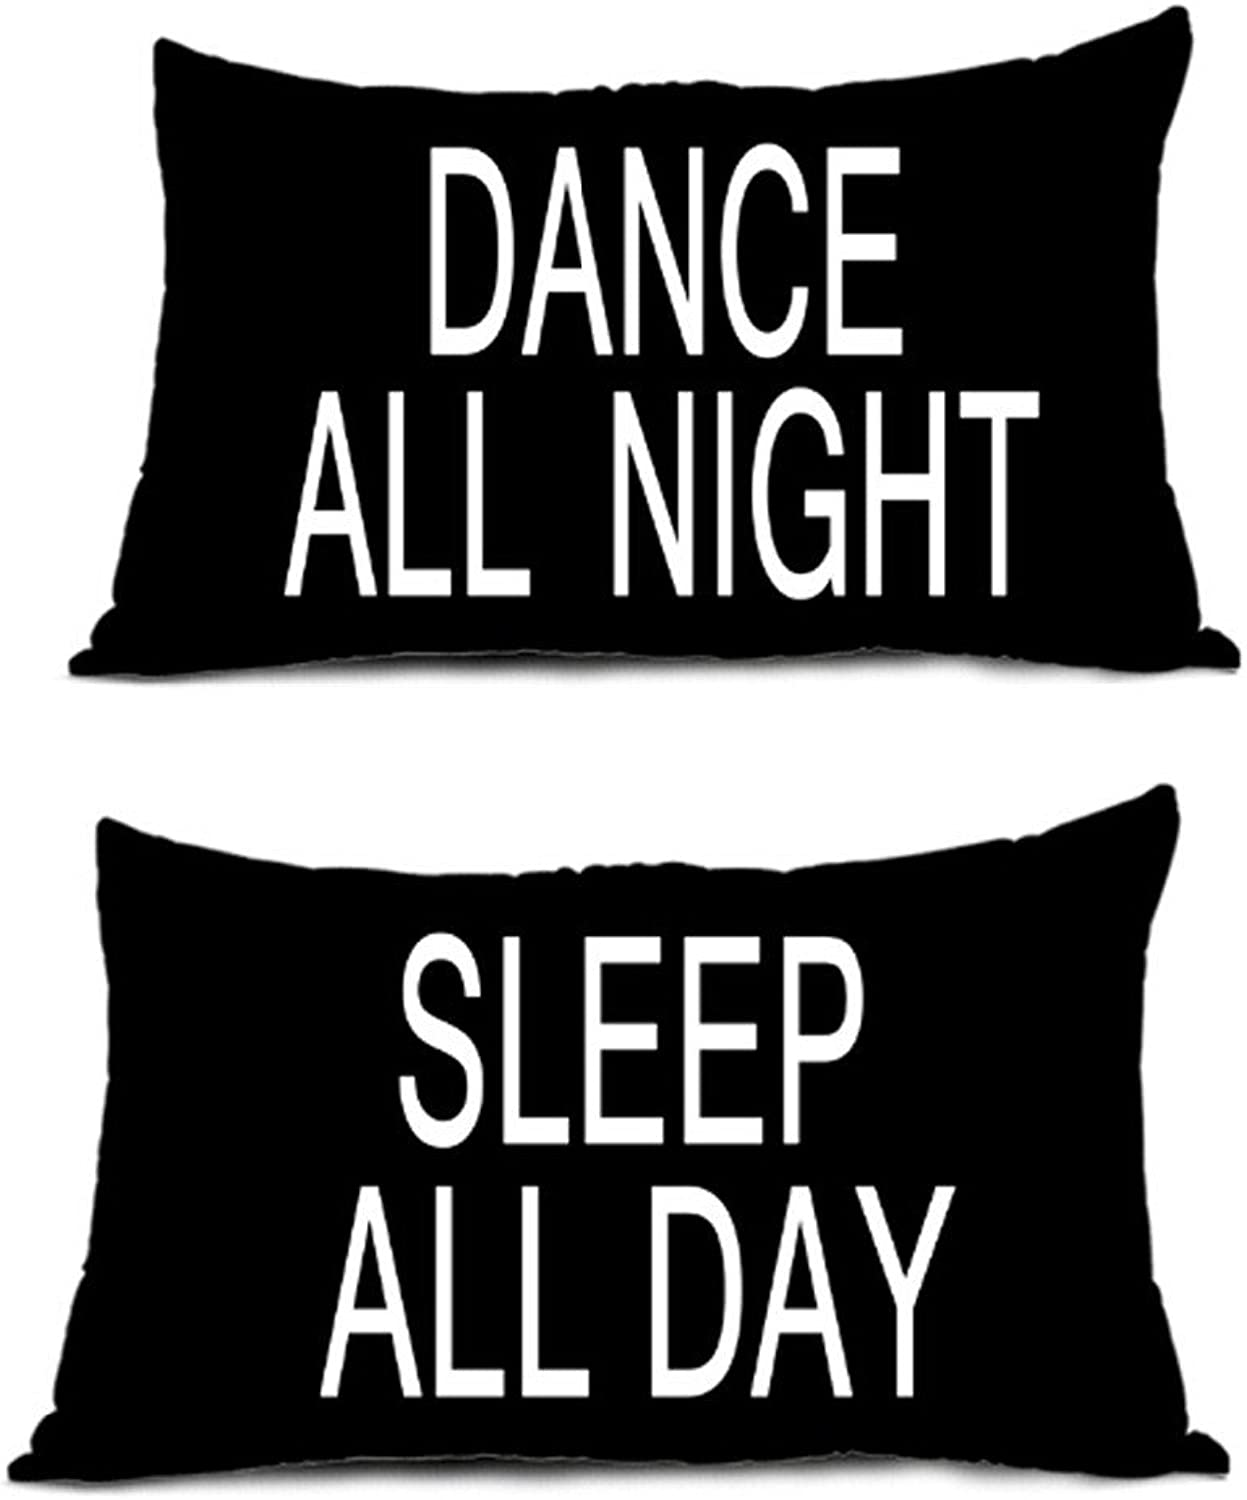 Dance All Night Sleep All Day Soft Pillowcase Invisible Zippered Twin Sides Printing Throw Pillow Covers